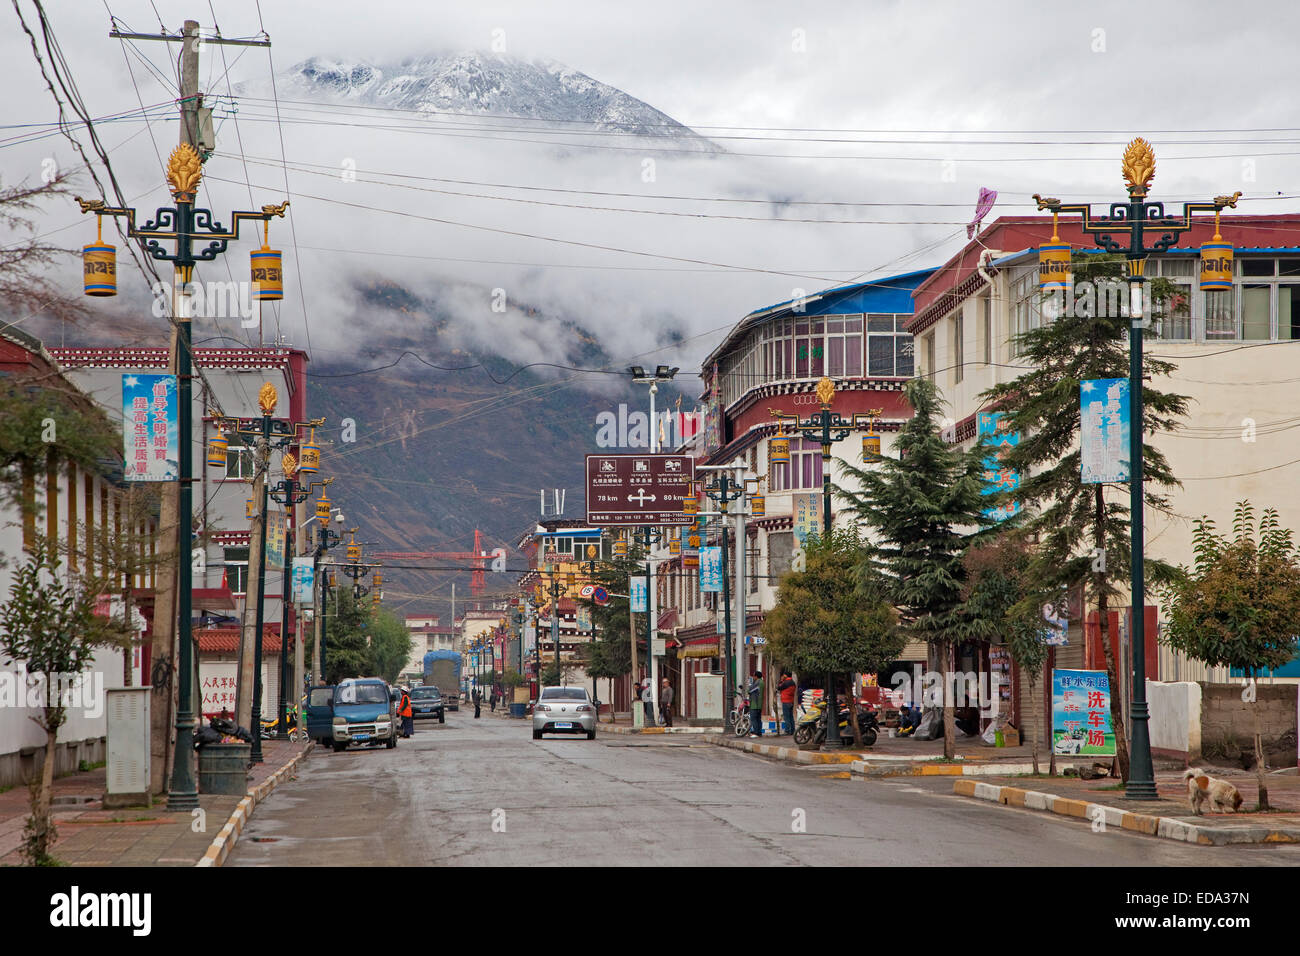 Street in the Tibetan town Dawu, Sichuan Province, China - Stock Image